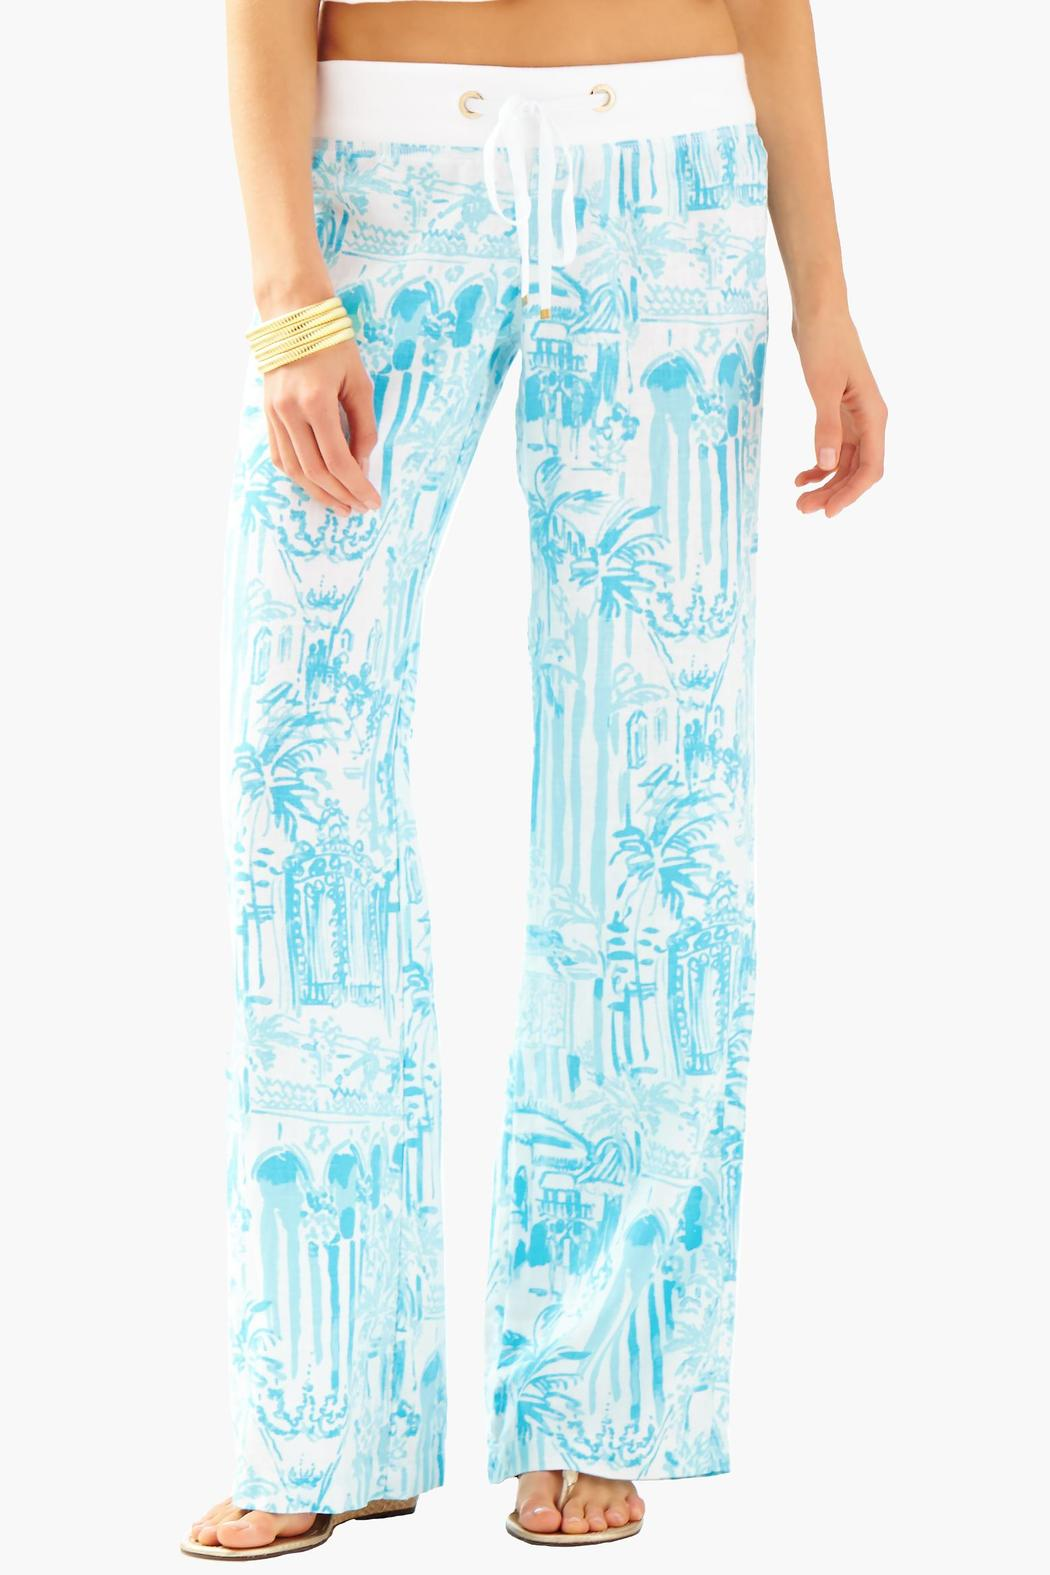 6dfb711907 Lilly Pulitzer Linen Beach Pant from Sandestin Golf and Beach Resort ...